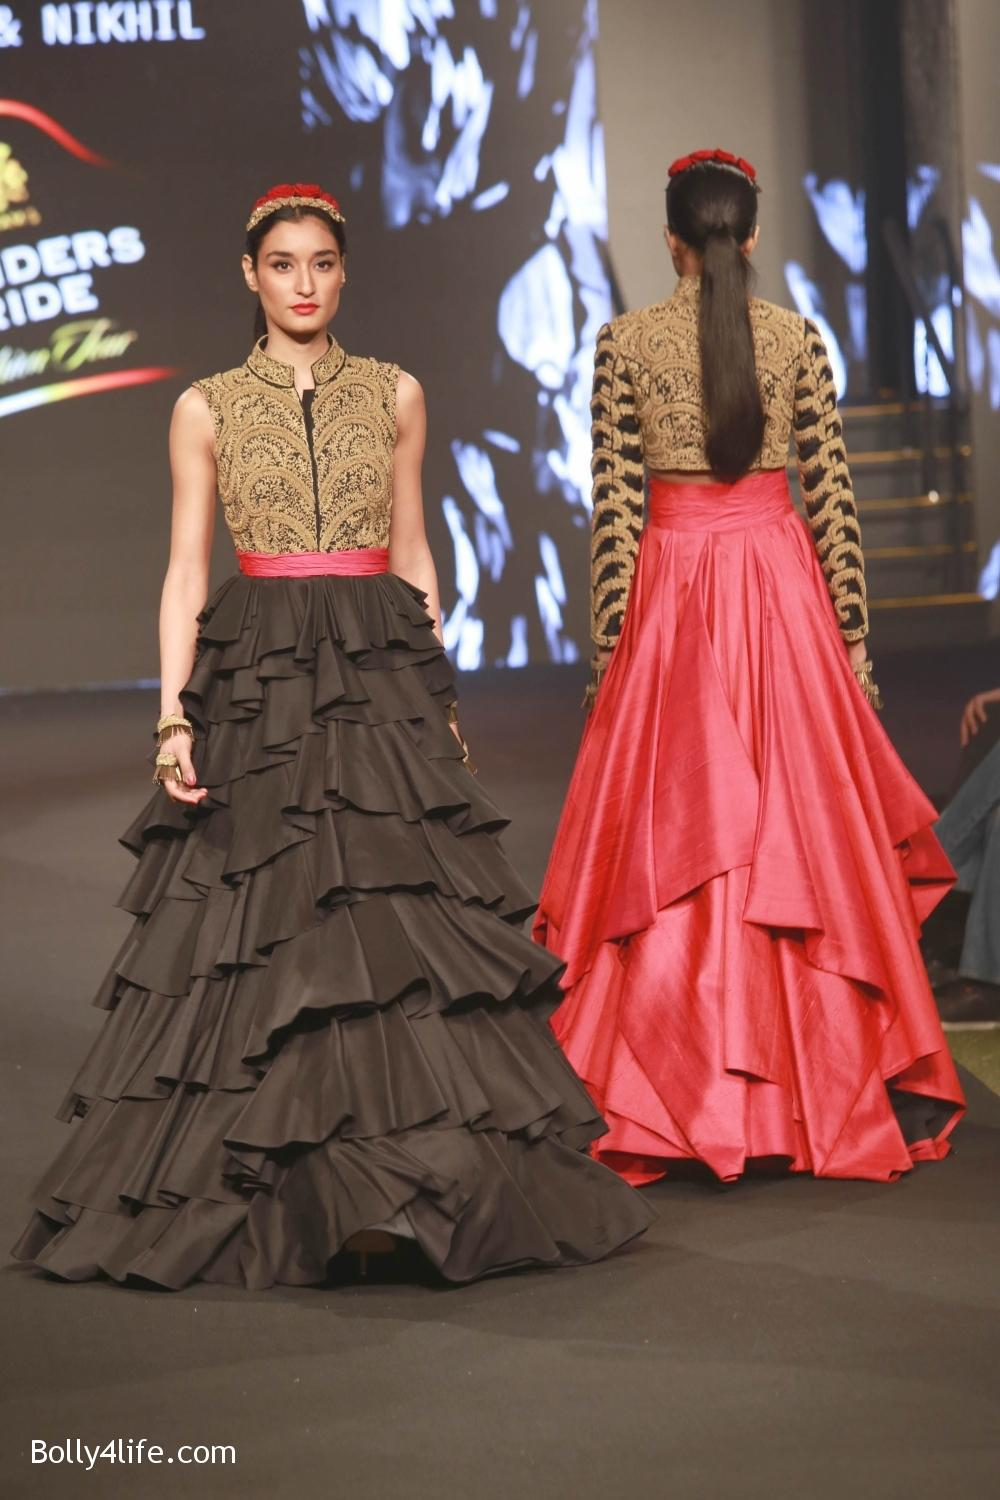 Sonam-Kapoor-walks-on-ramp-for-designers-Shantanu-and-Nikhils-show-during-the-Blenders-Pride-Fashion-Tour-2016-6.jpg